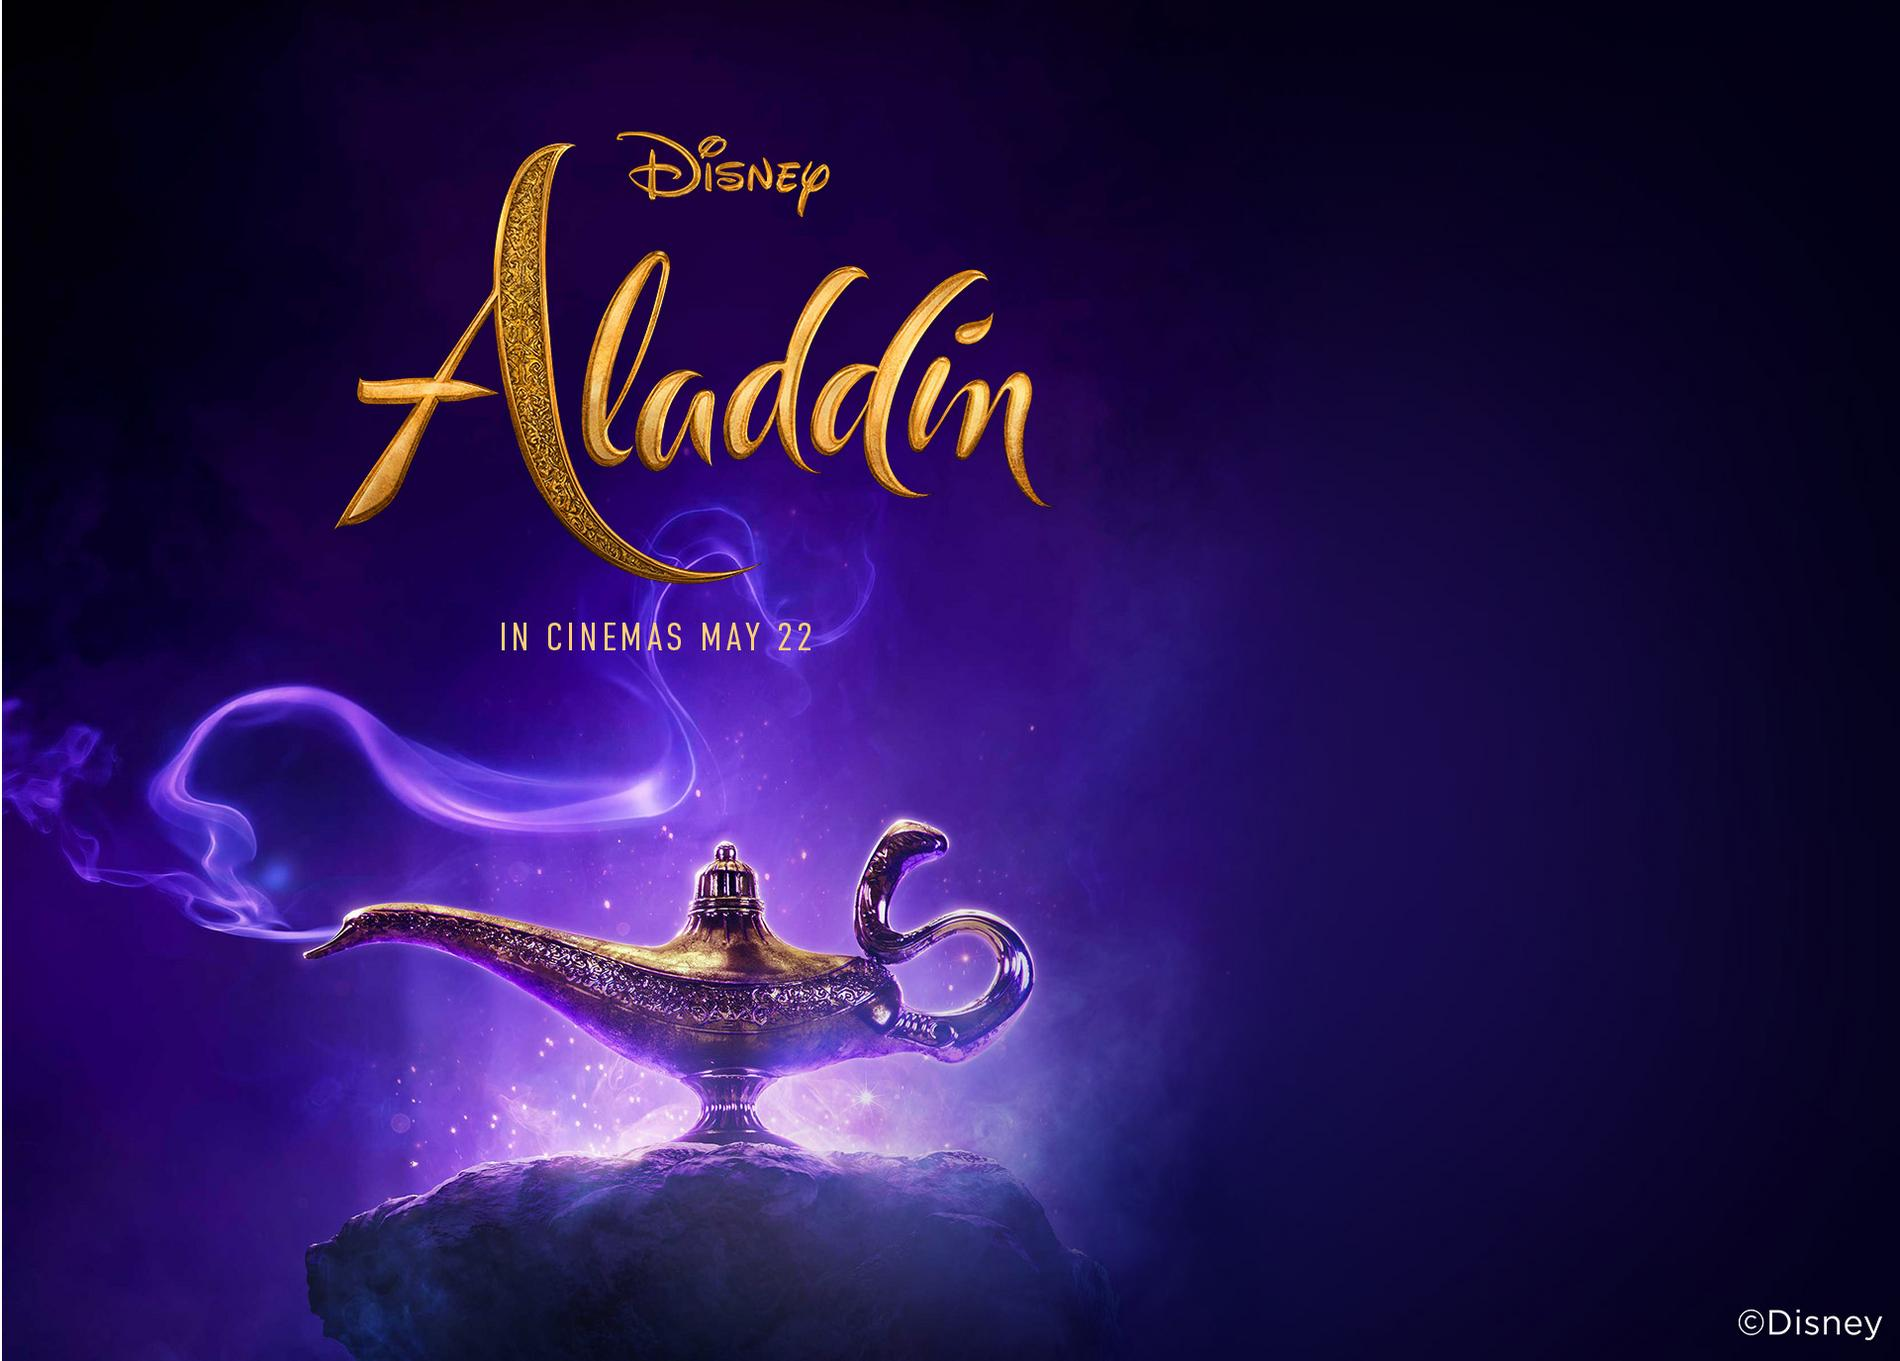 Disney's Aladdin Movie Poster